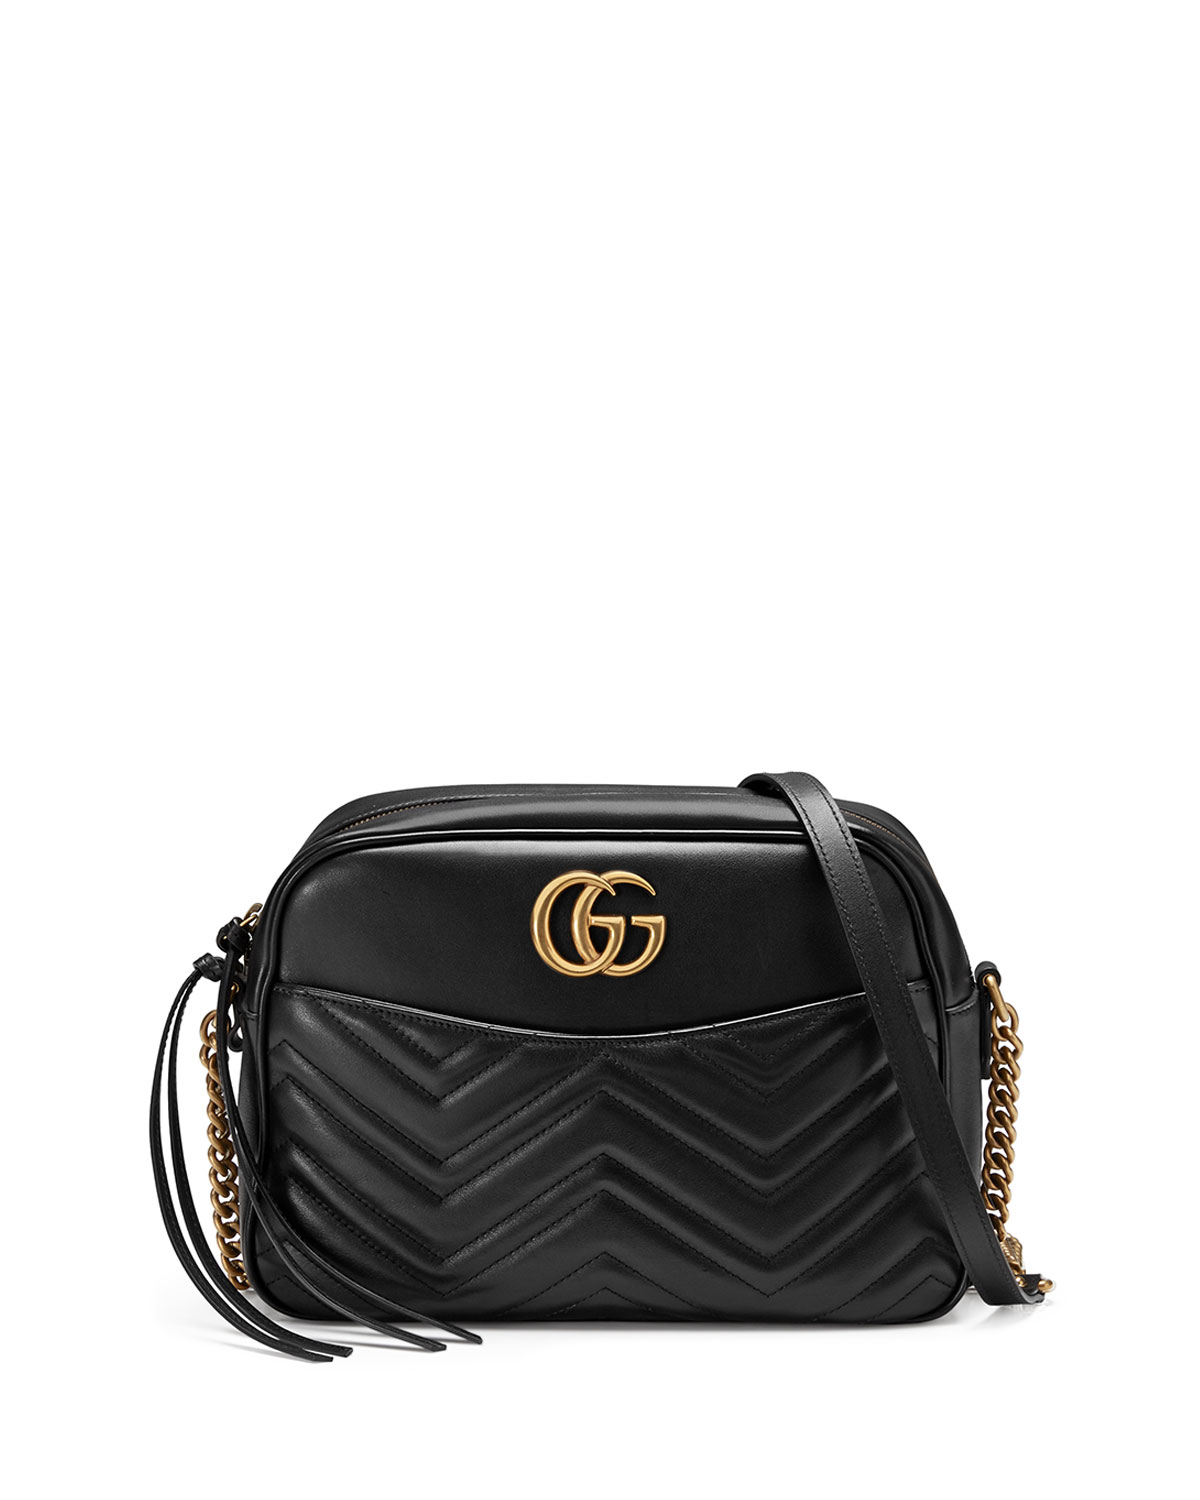 c89bc336f2ee Gucci GG Marmont 2.0 Medium Quilted Camera Bag, Black | Neiman Marcus